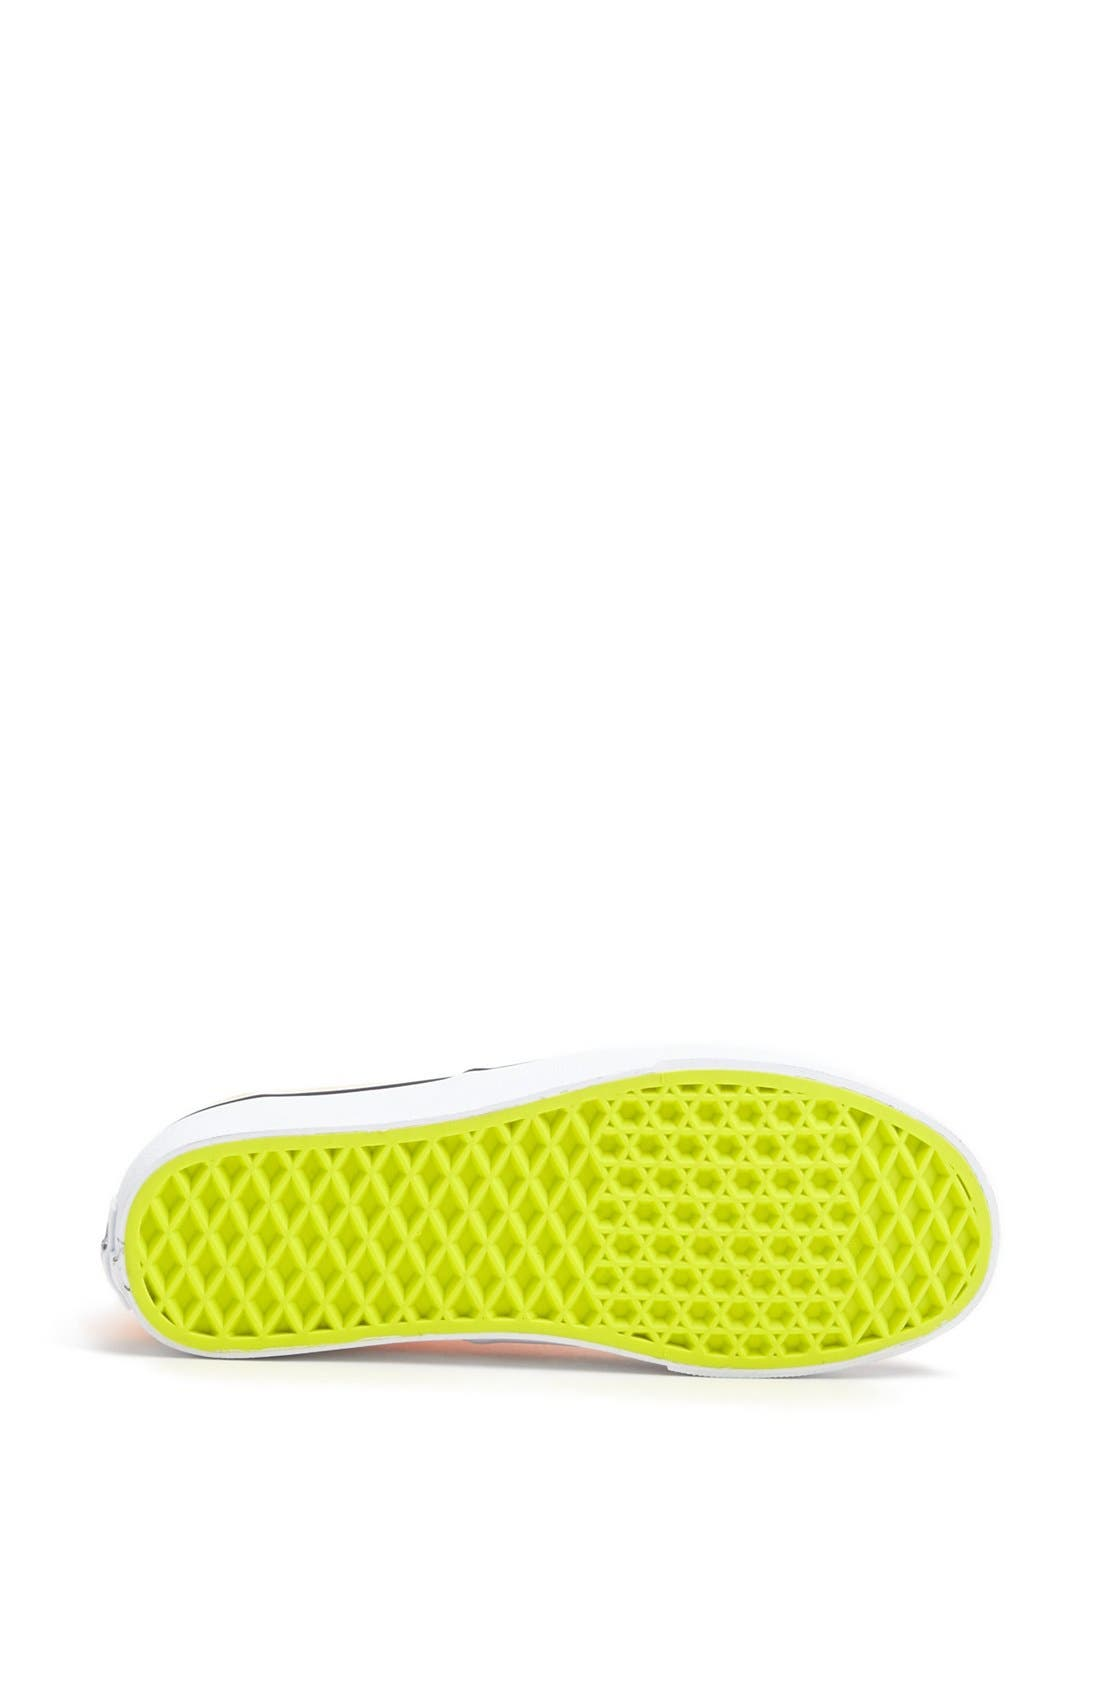 Alternate Image 4  - Vans 'Authentic' Neon Sneaker (Women)